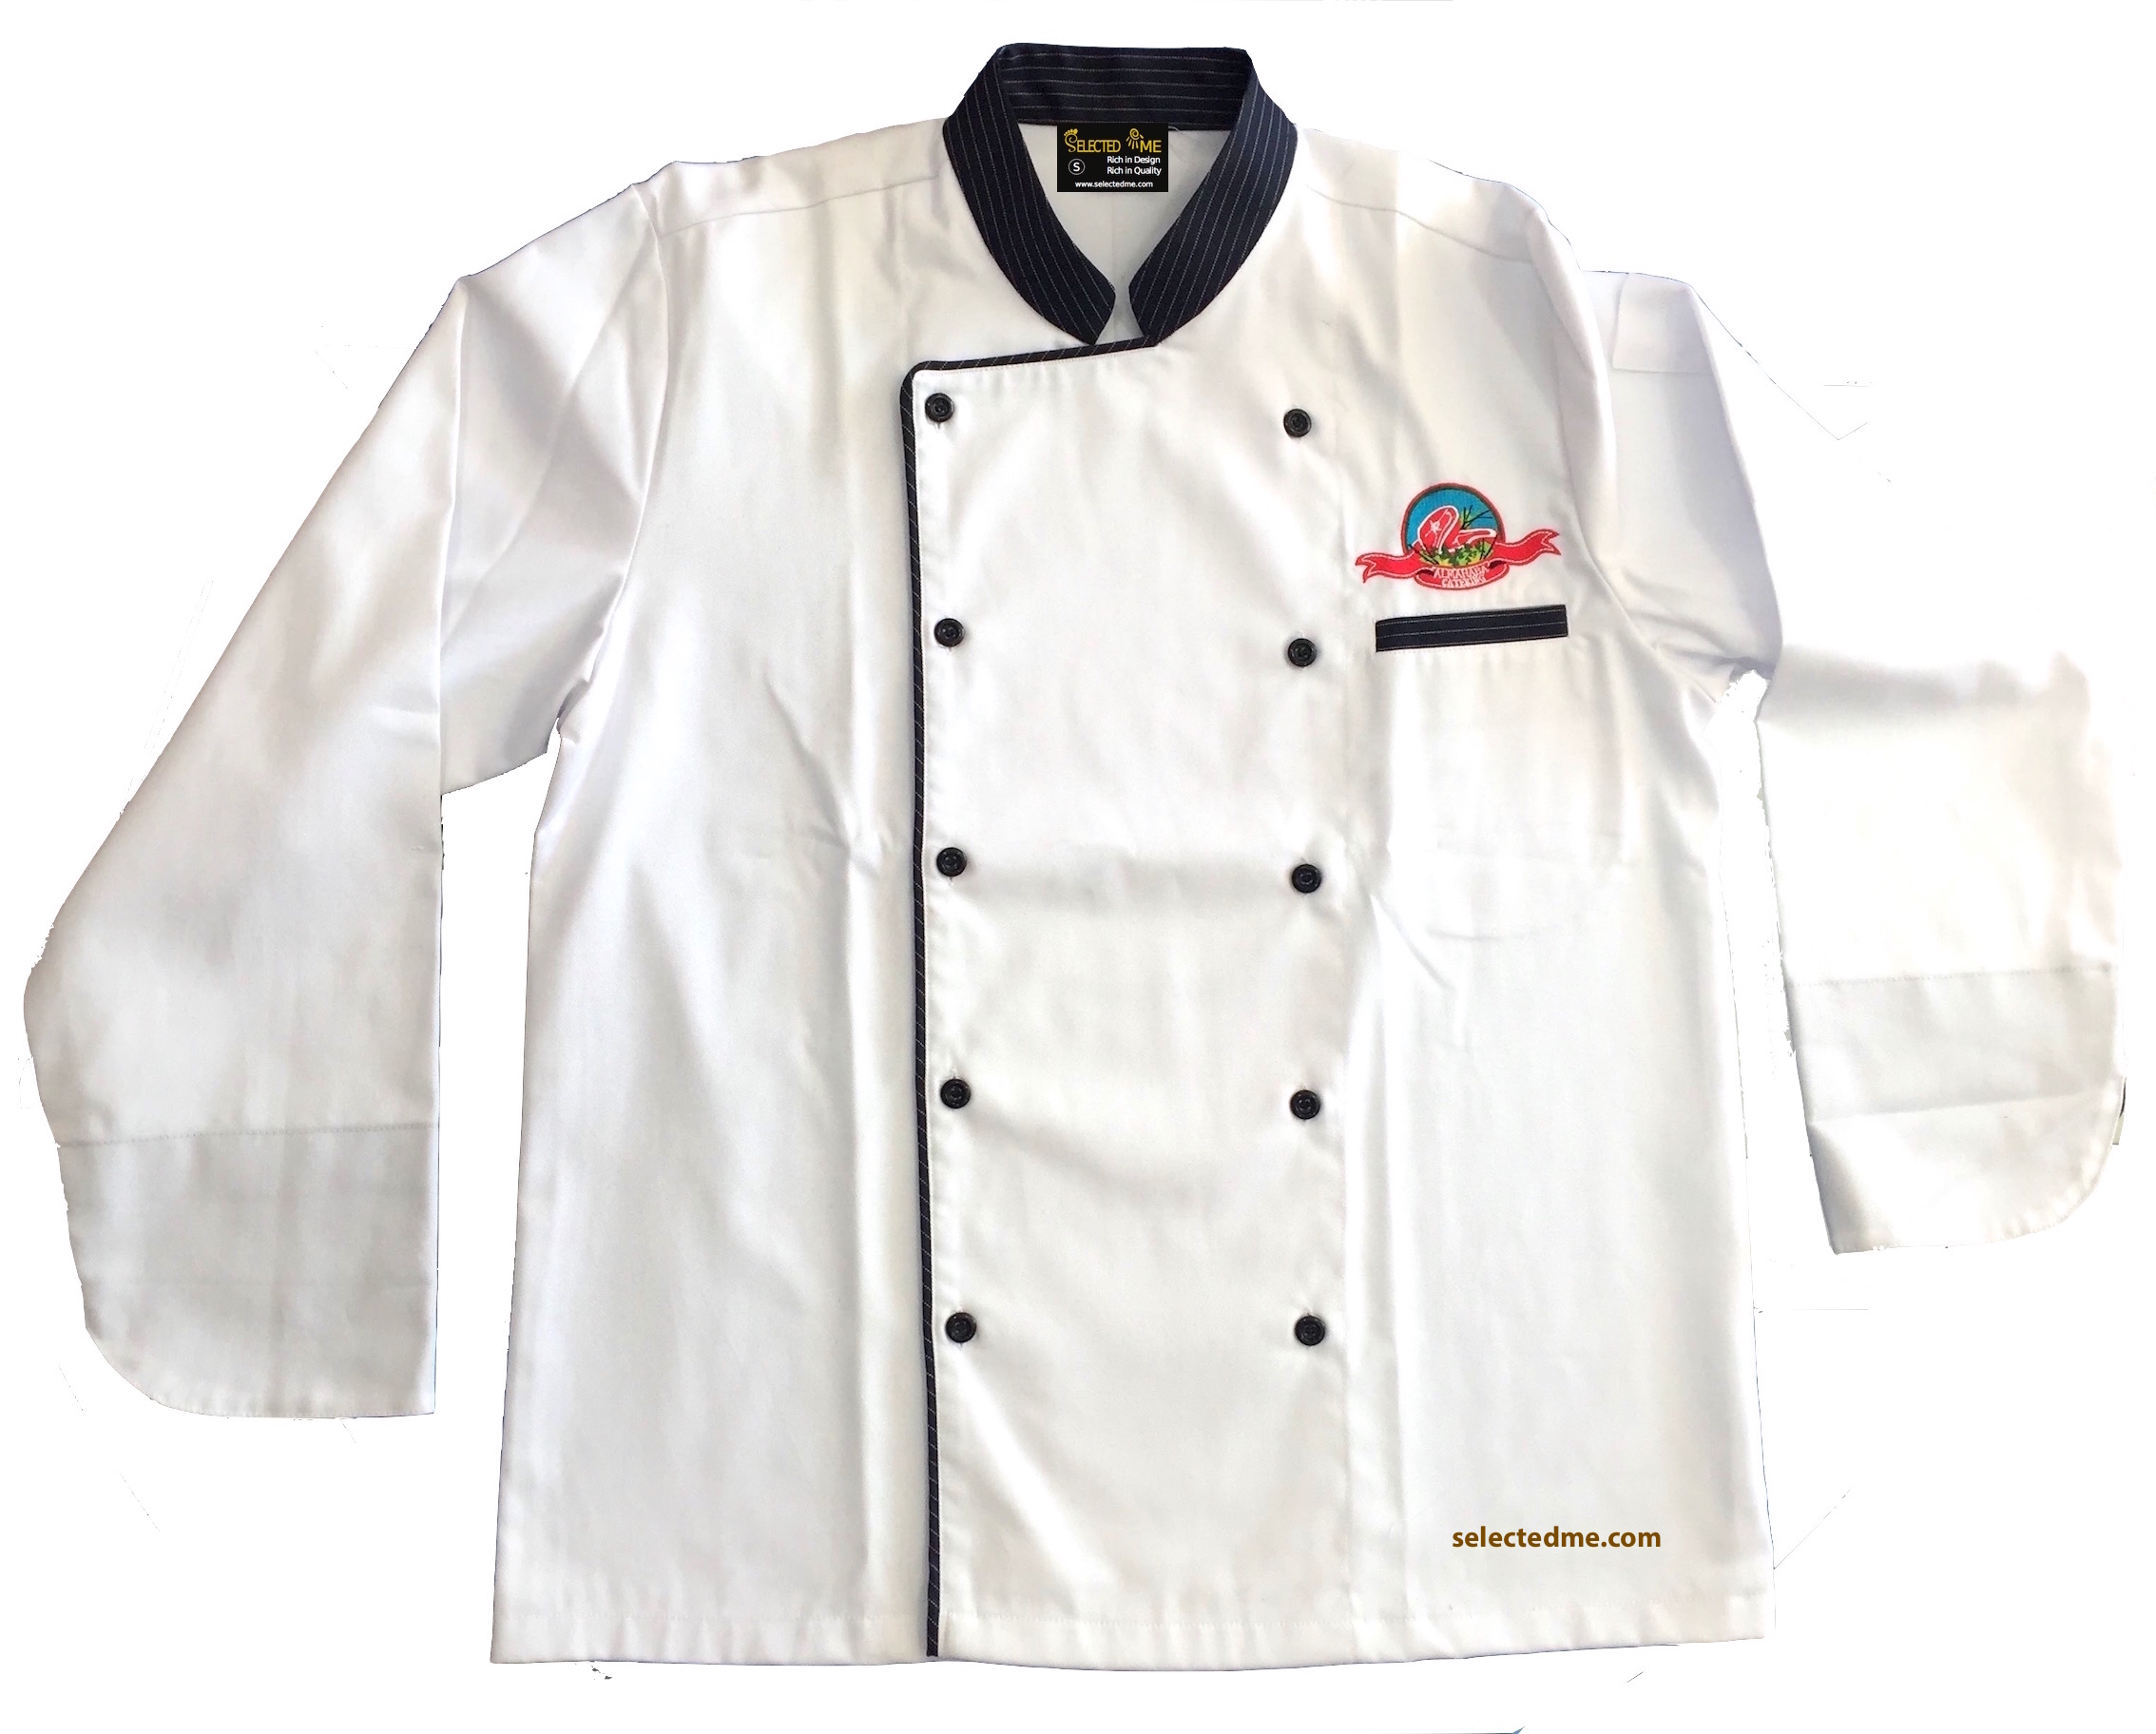 Chef Coats, Chef Jackets - Custom Chef Uniforms